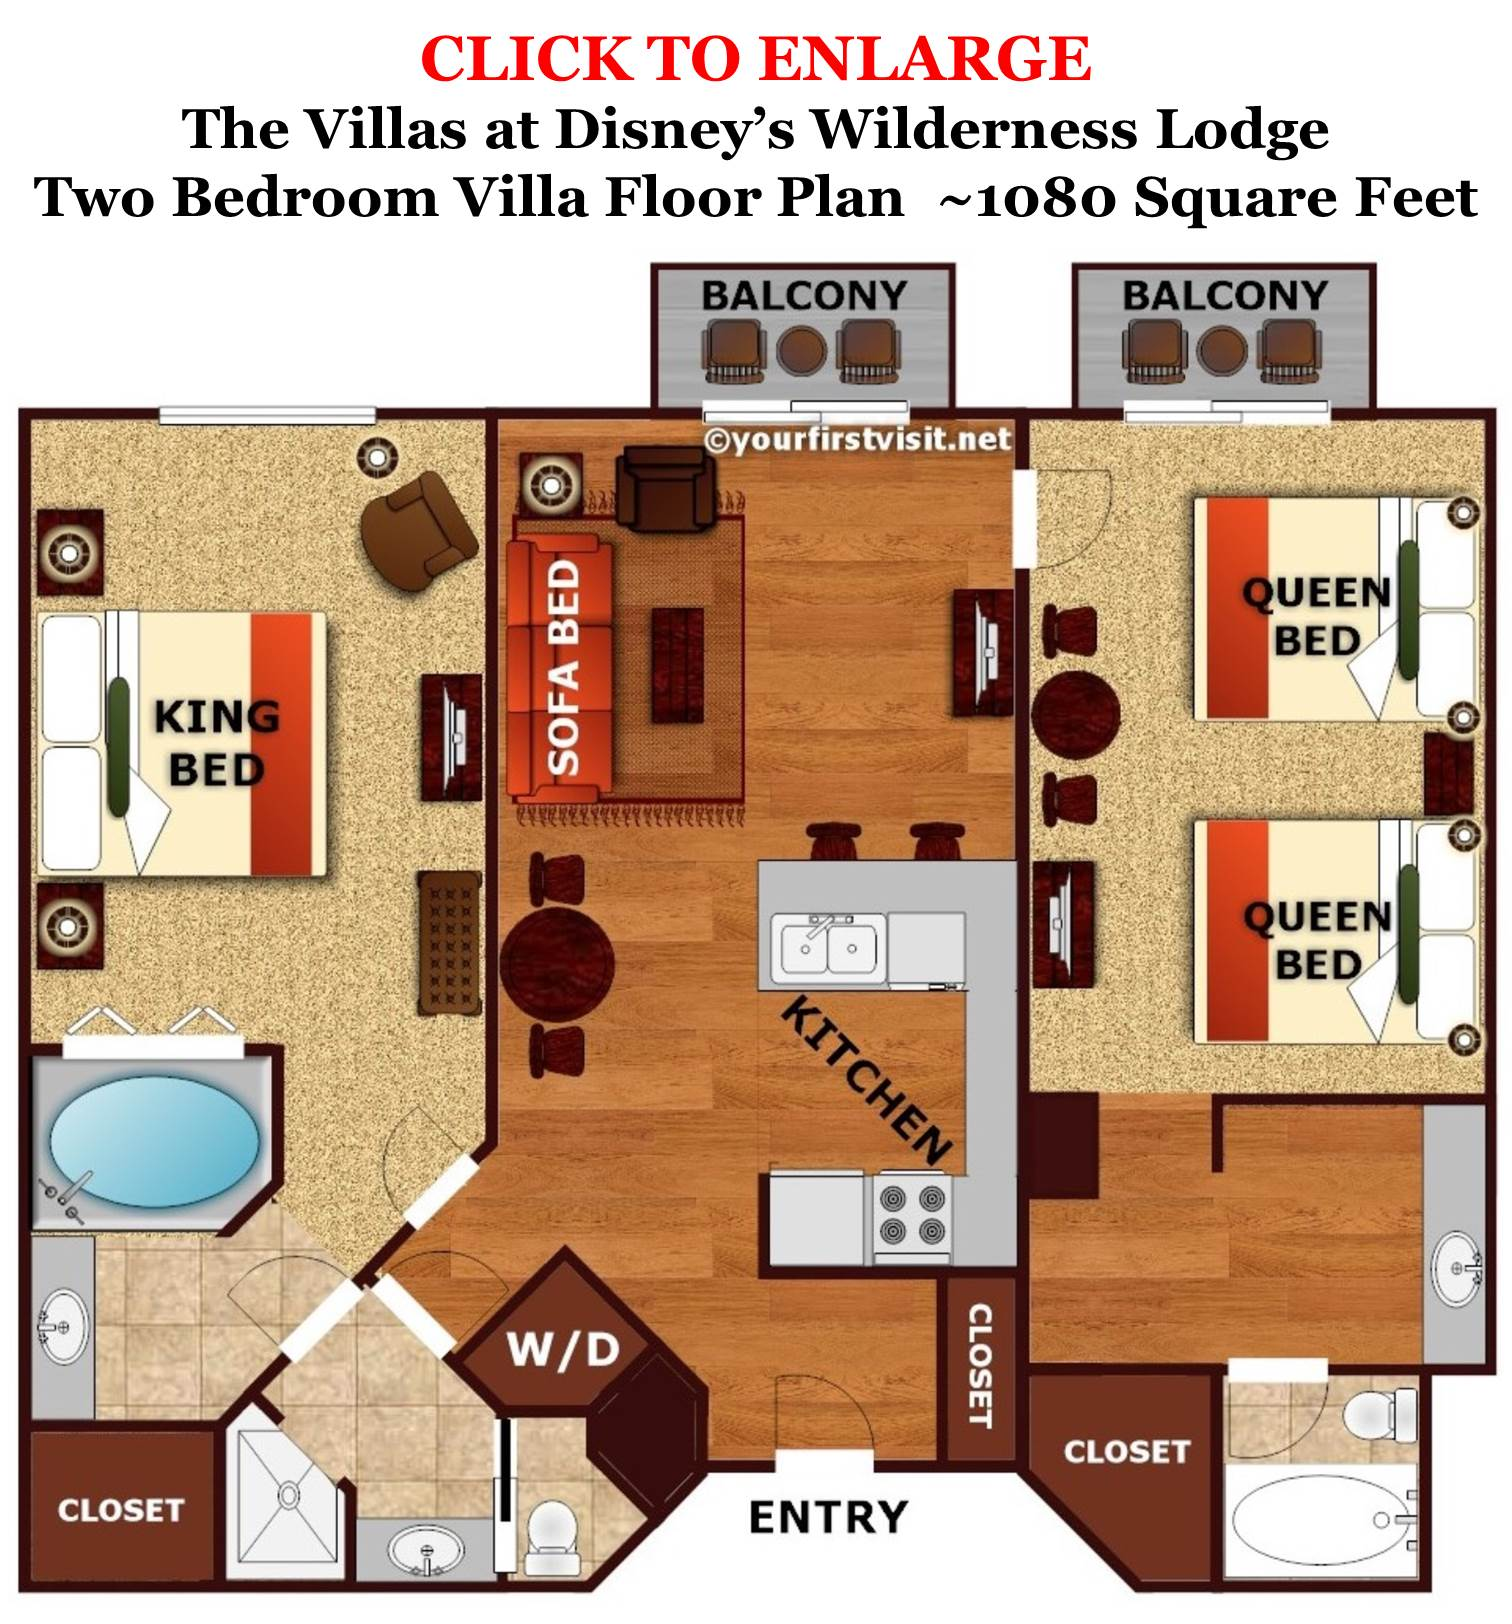 Old Key West 1 Bedroom Villa Floor Plan Review The Villas At Disney S Wilderness Lodge Page 5